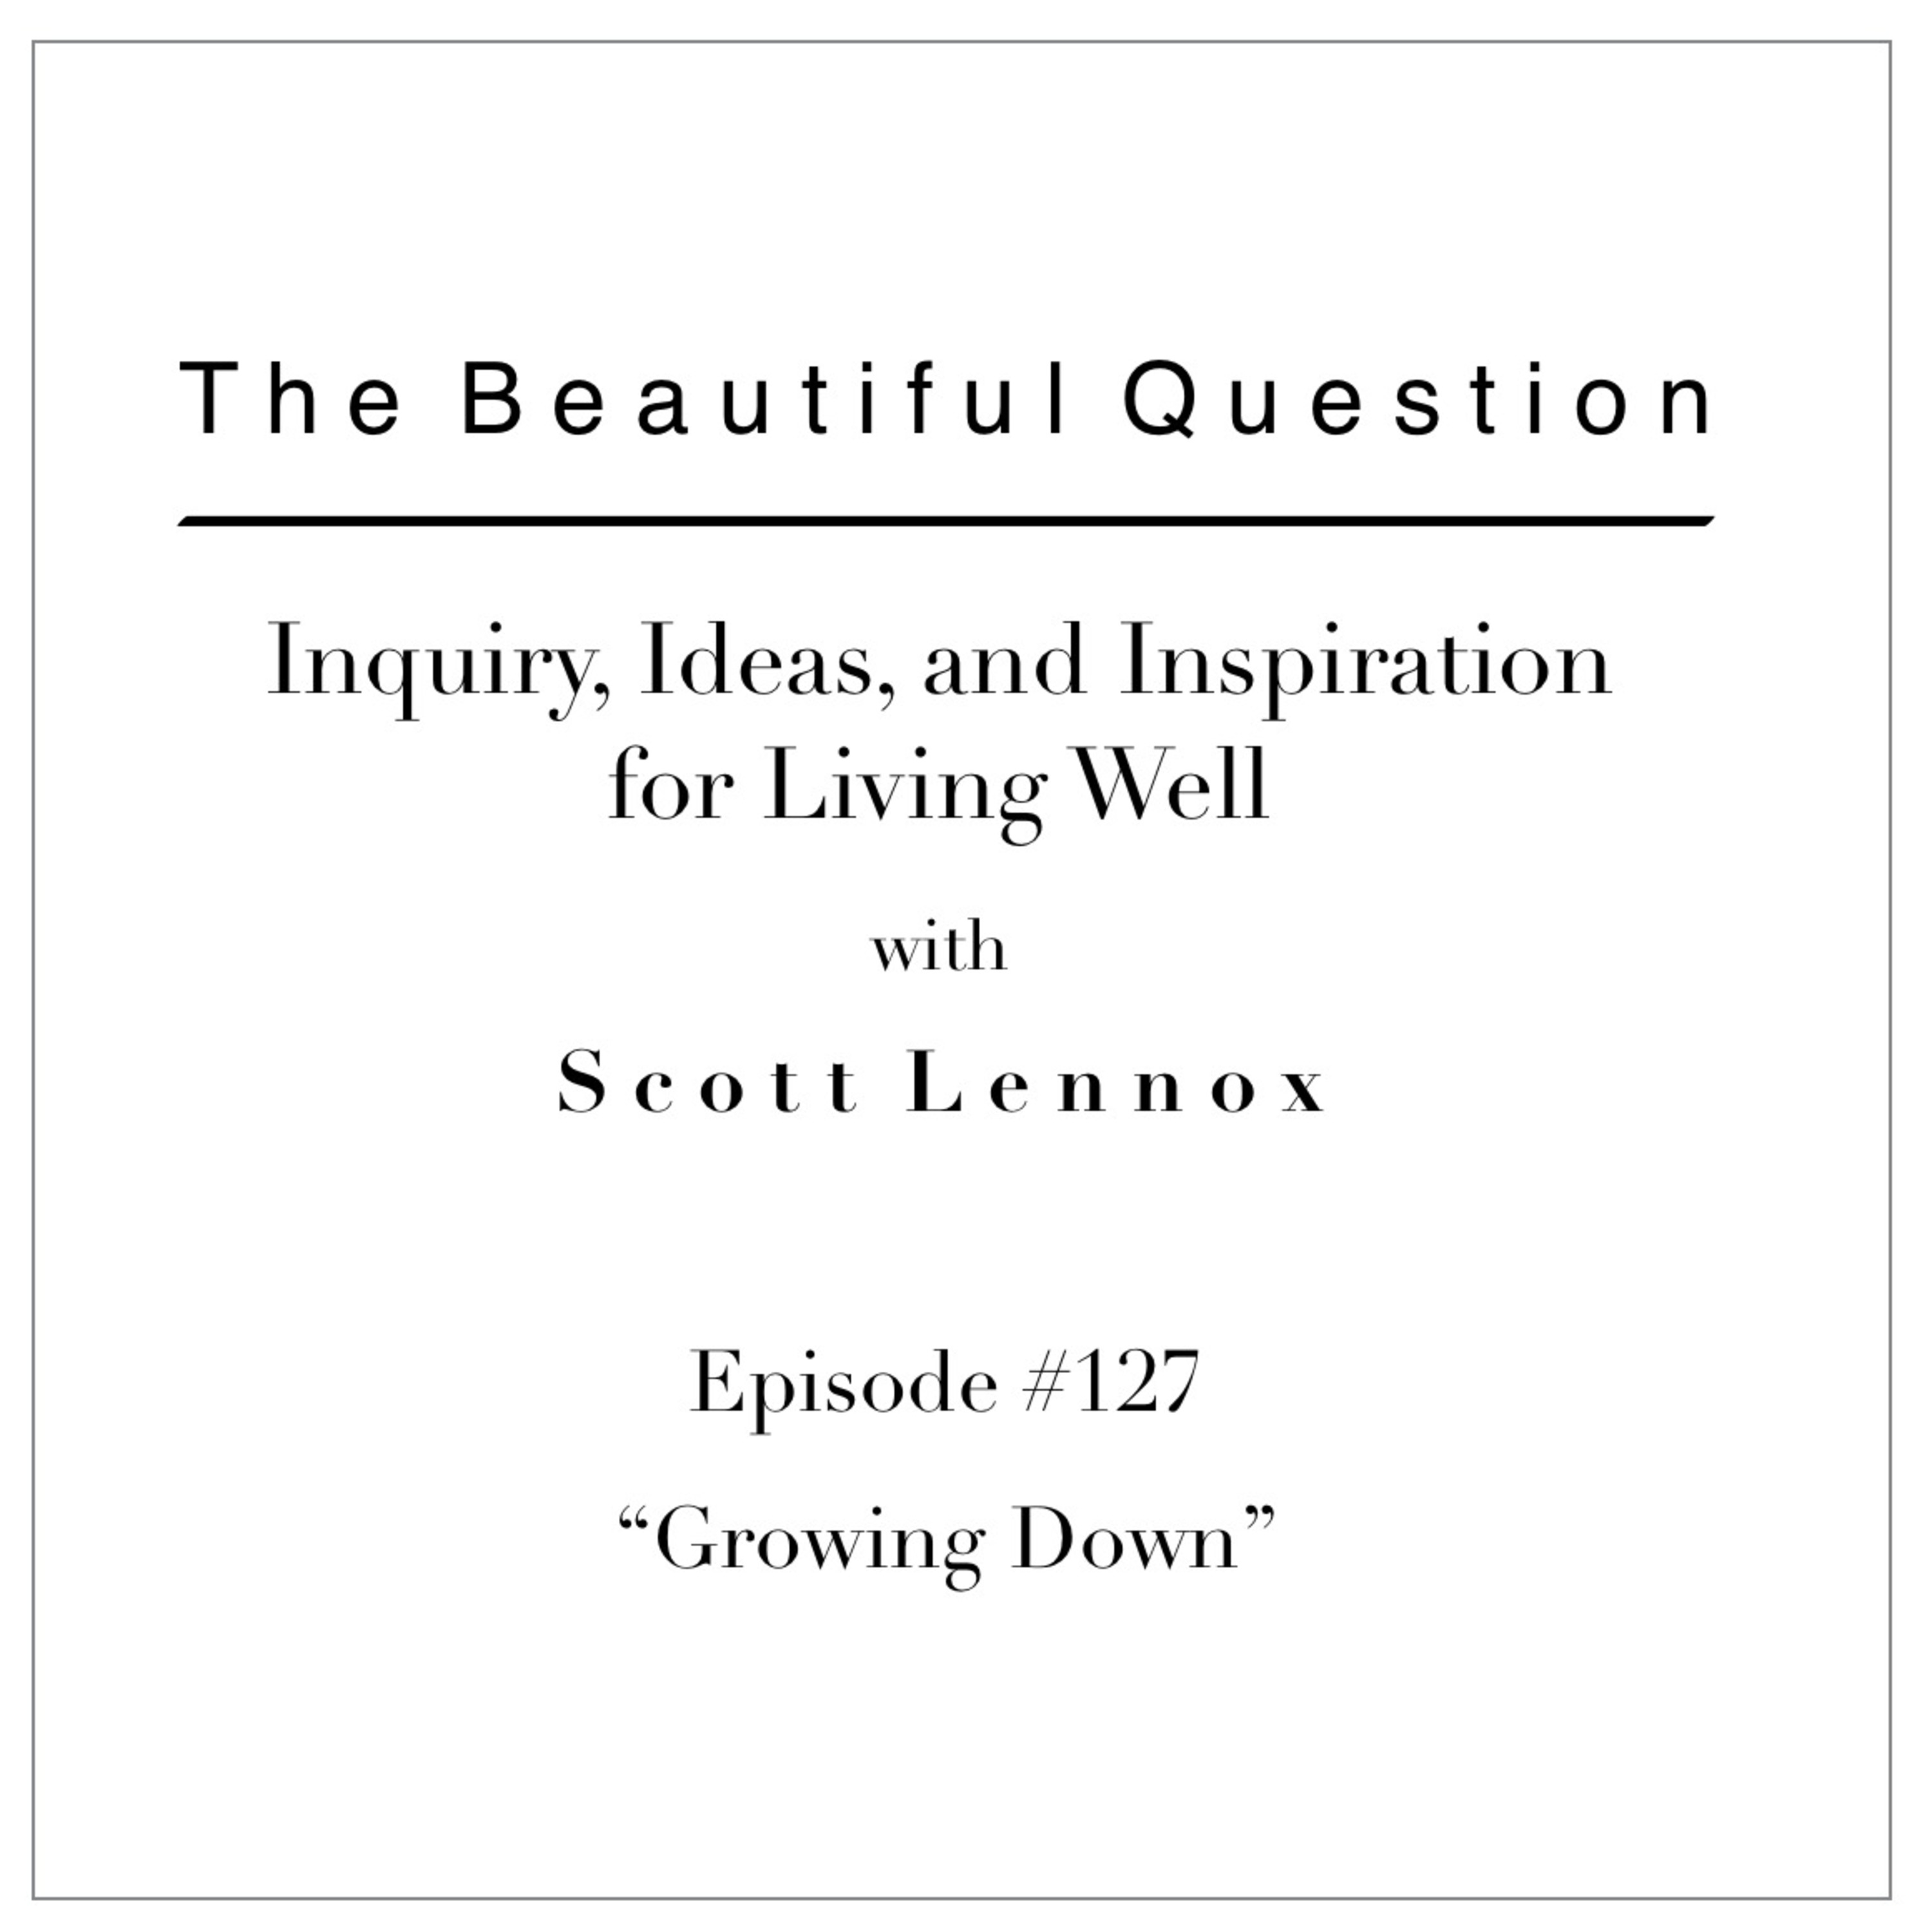 Ep. #127 Growing Down